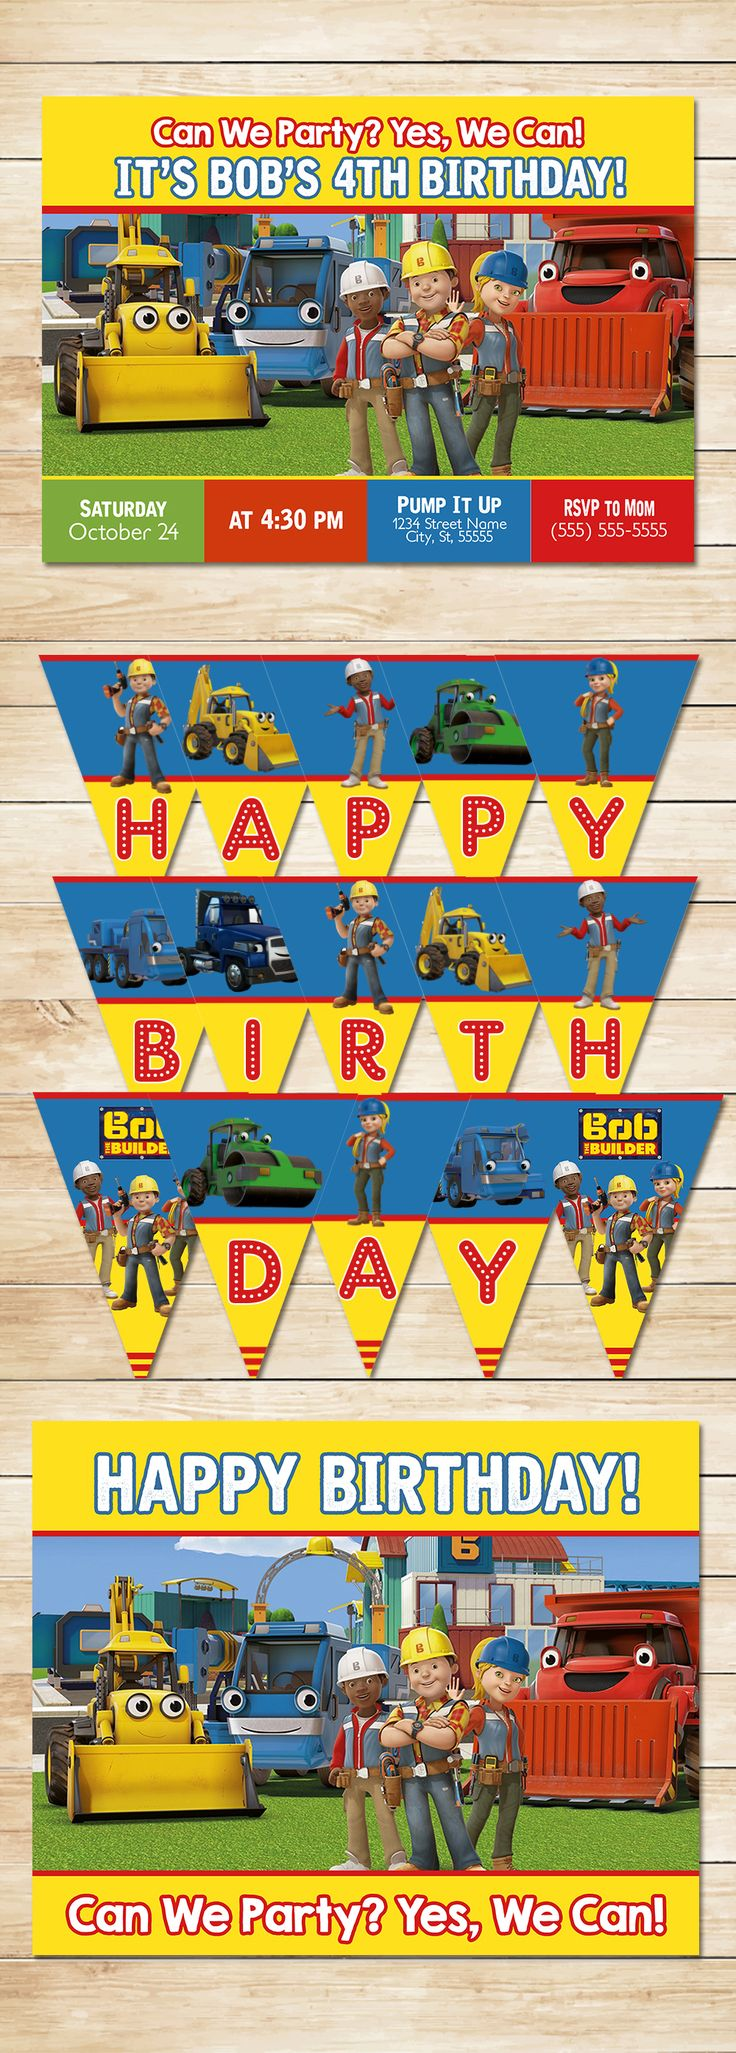 Bob the Builder Party * Bob The Builder Invitation * Bob The Builder Banner *Bob The Builder Birthday * Bob The Builder Printables